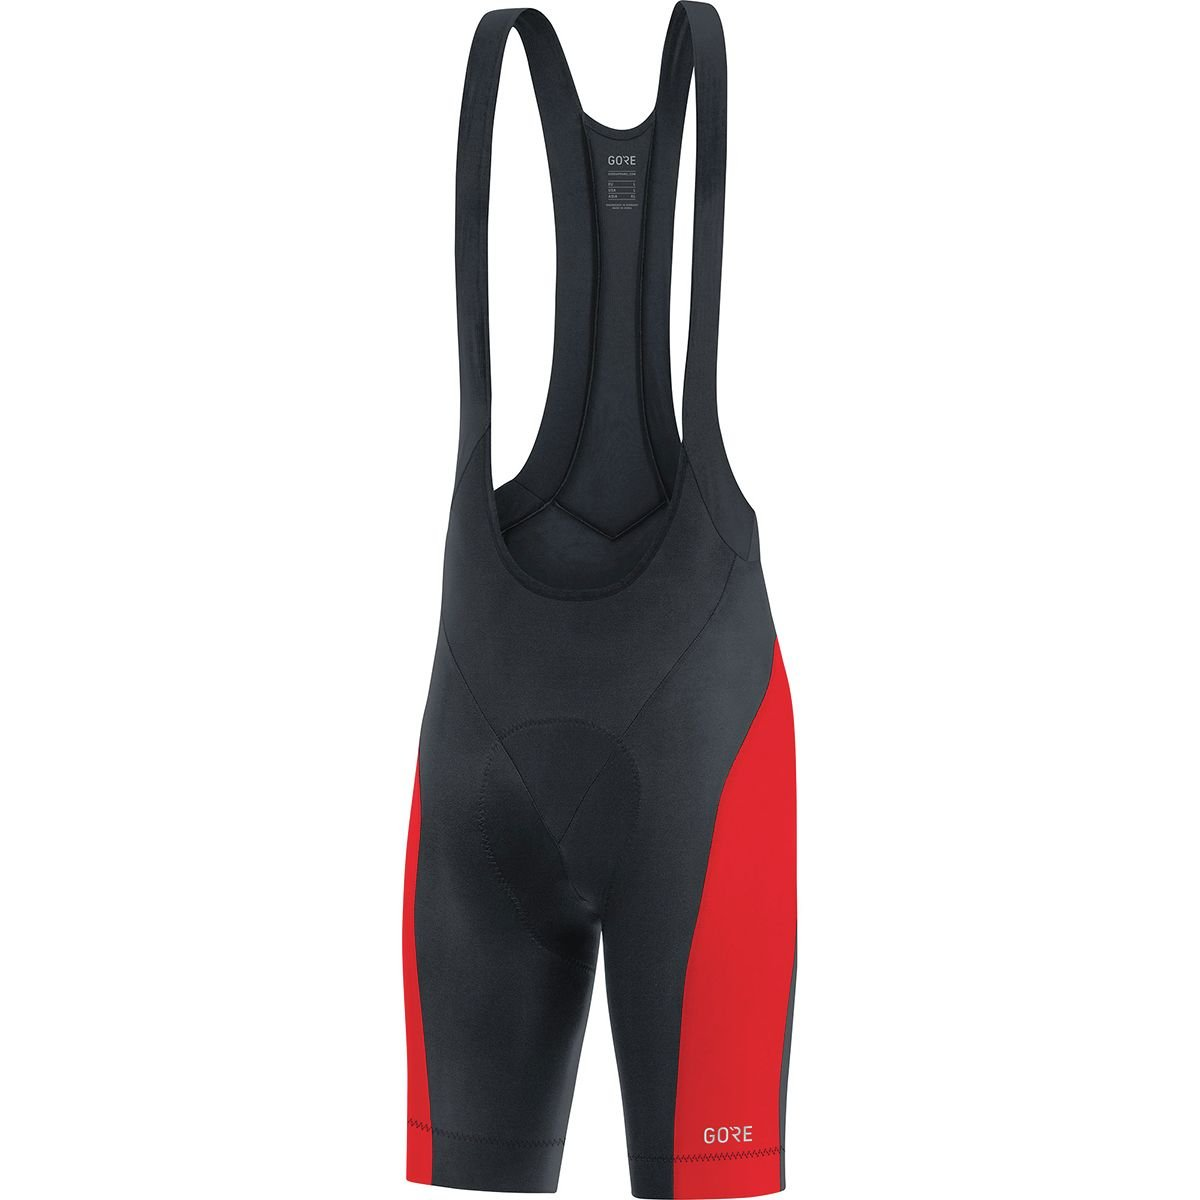 GORE WEAR C3 Men's Cycling Bib Shorts with Seat Insert, Size: L, Color: Black/Rot